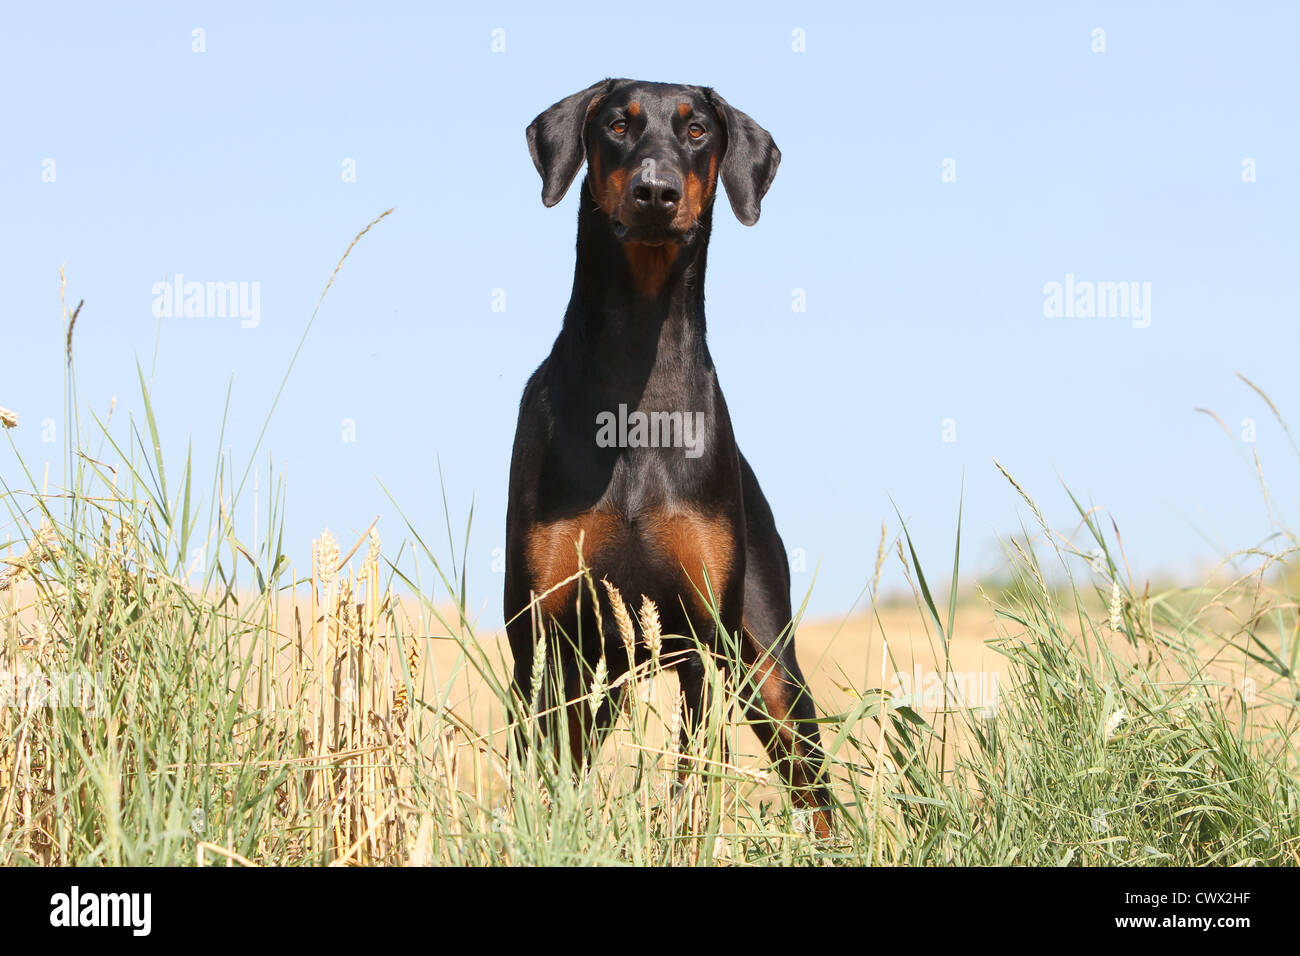 Dog Dobermann Pinscher Black and tan - Stock Image